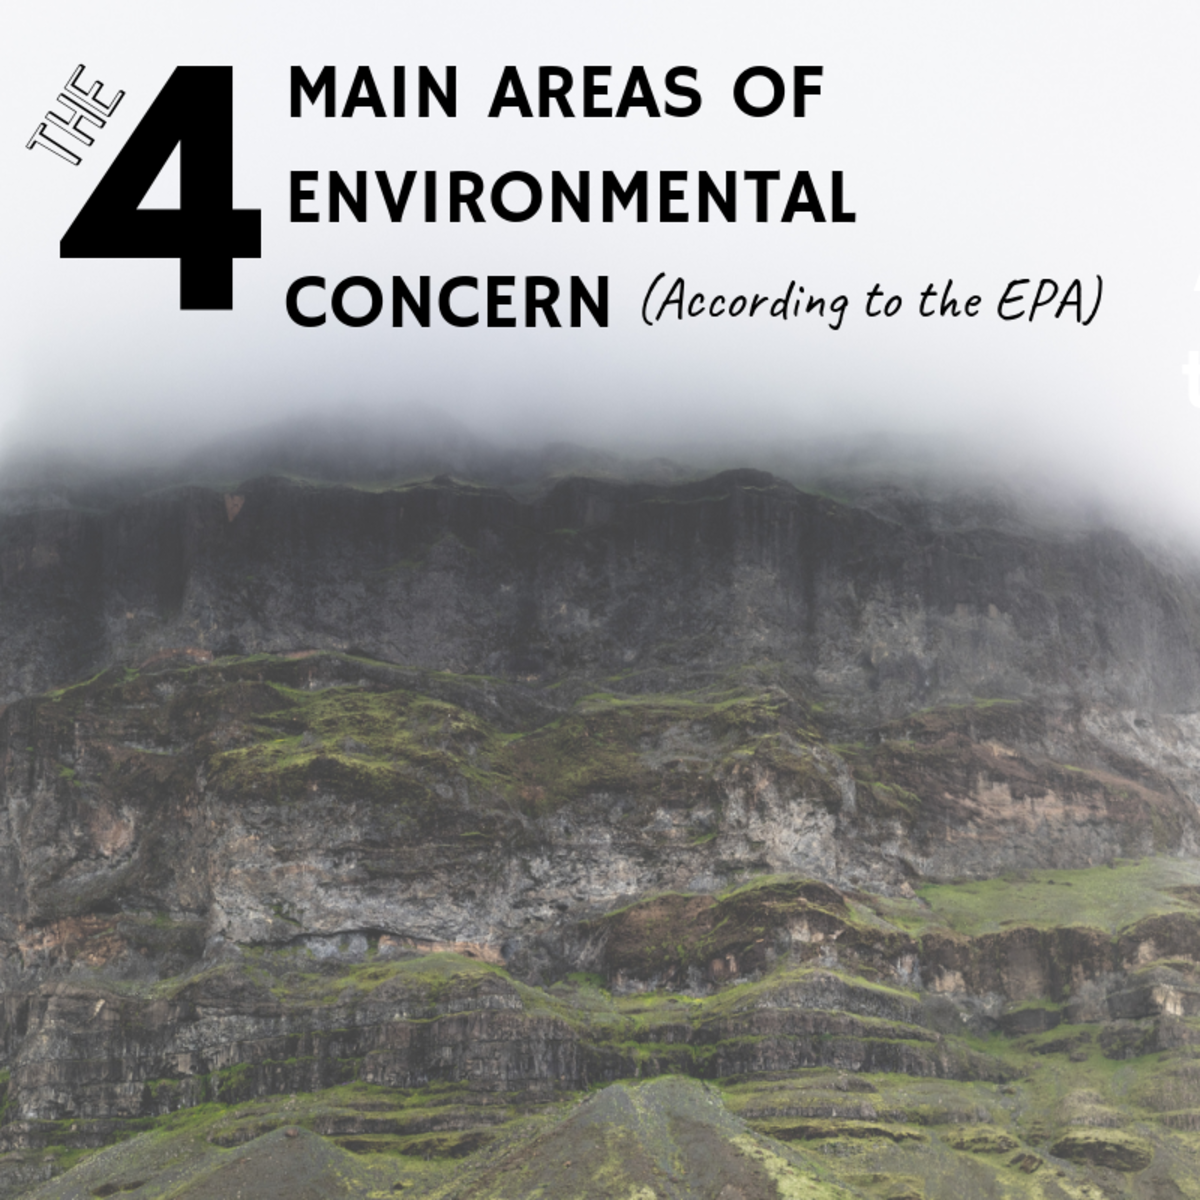 The 4 Major Environmental Issues and Concerns of the EPA